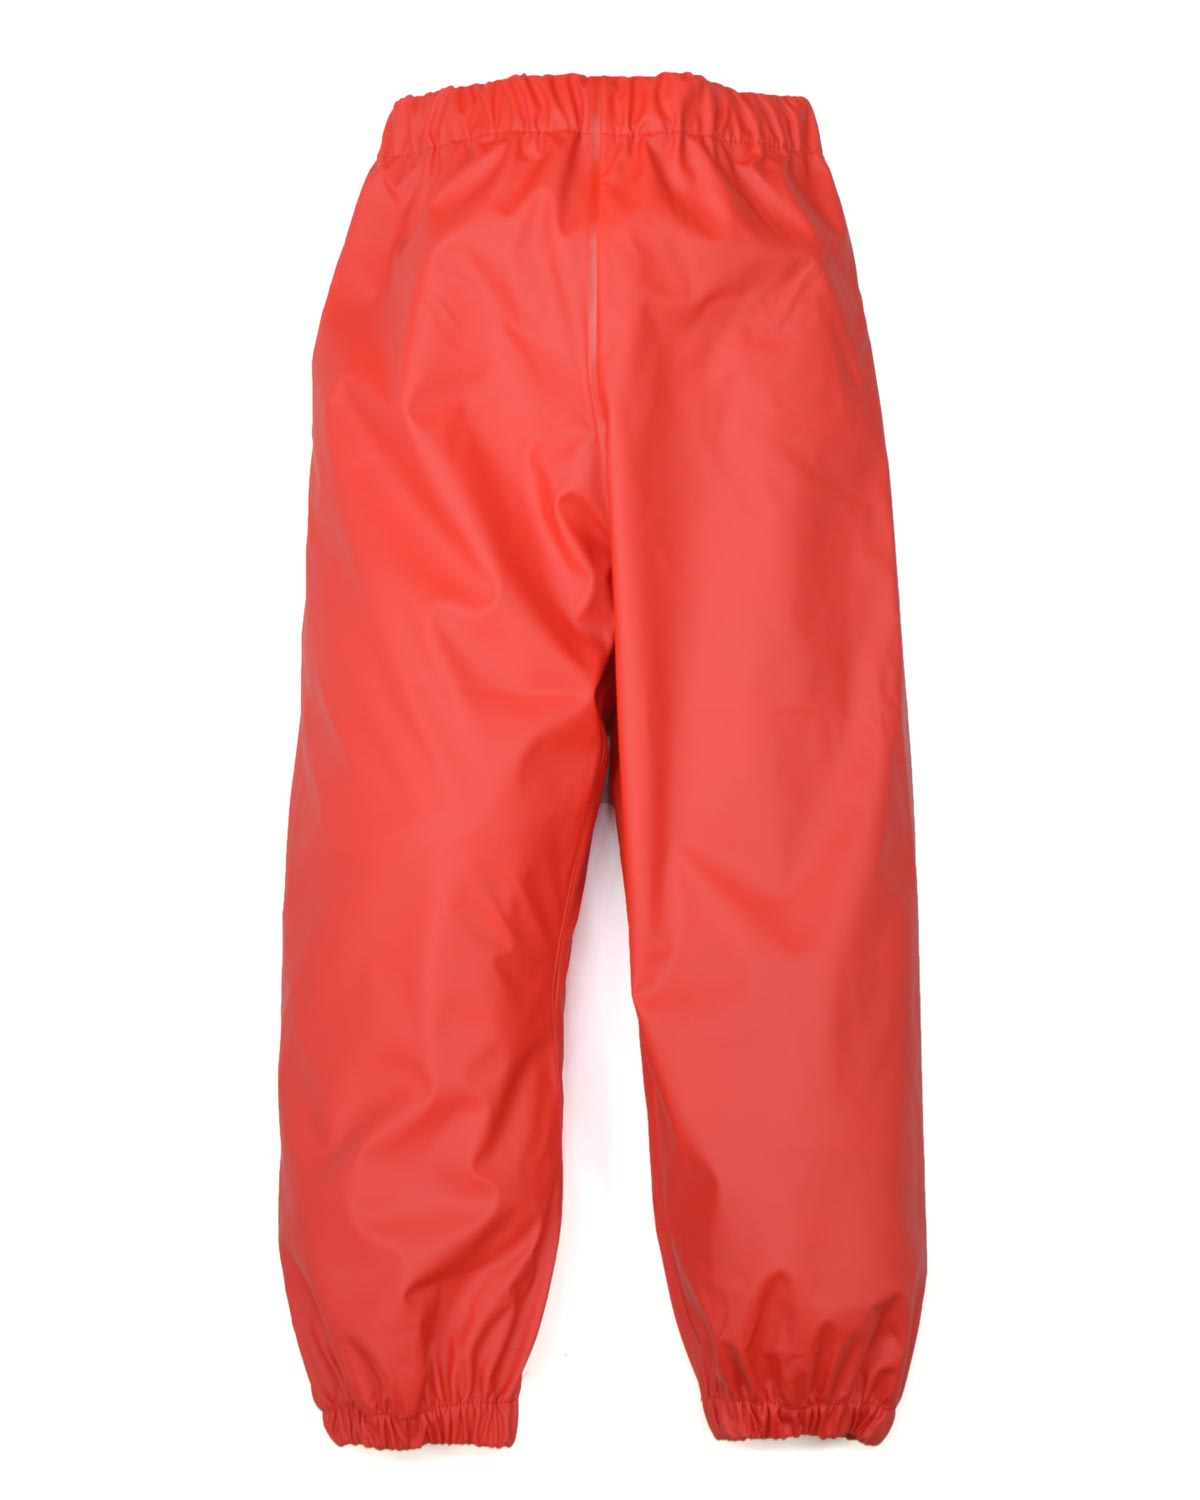 WelliesAU Red Splash Pants